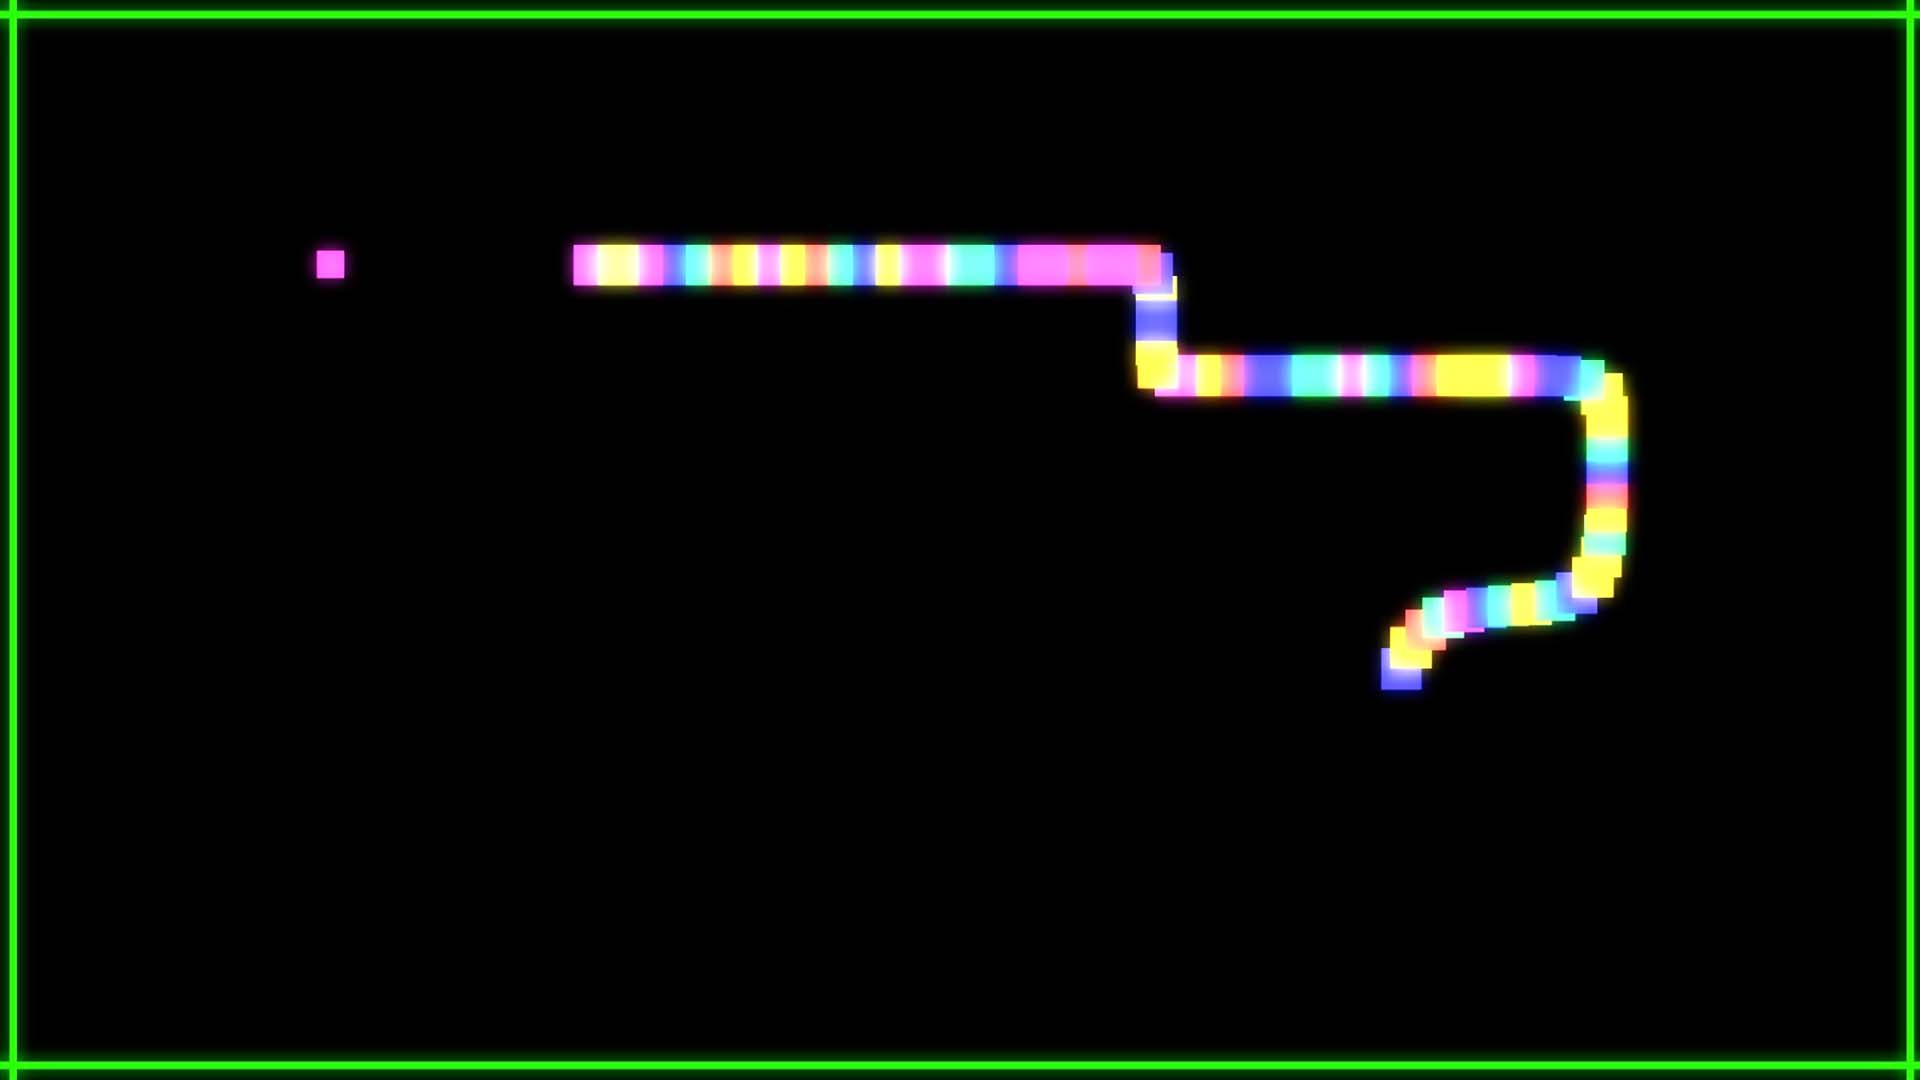 LazyGuysBundle –Steam game Rainbow Snake by RandomSpin for Windows available in the Bundle 25: Feels Like Home deal for a cheap price.